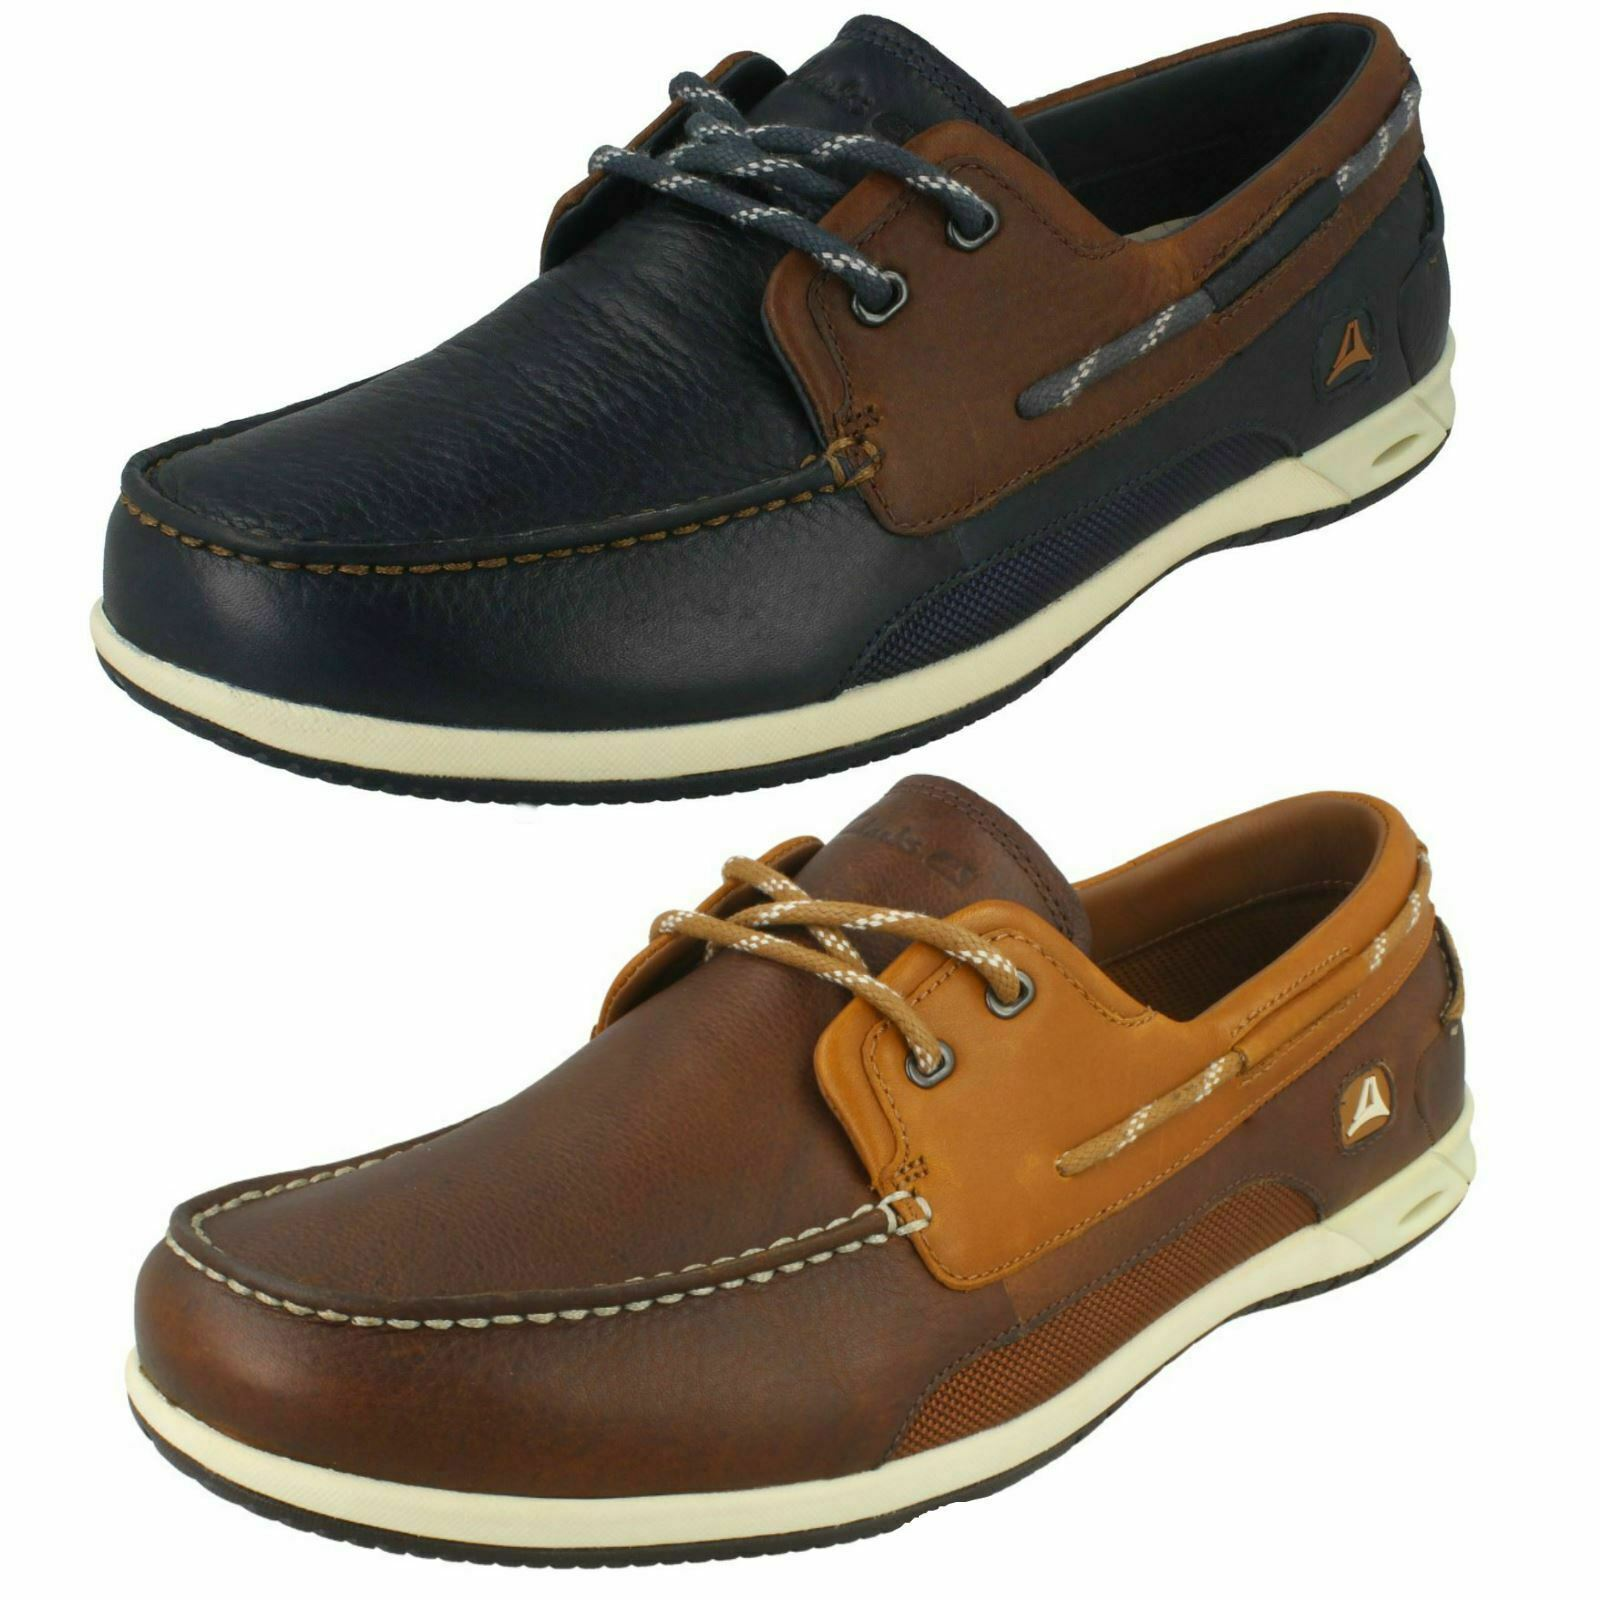 MENS CLARKS ORSON HARBOUR DRESS SUMMER LACE UP BOAT SHOES STYLE